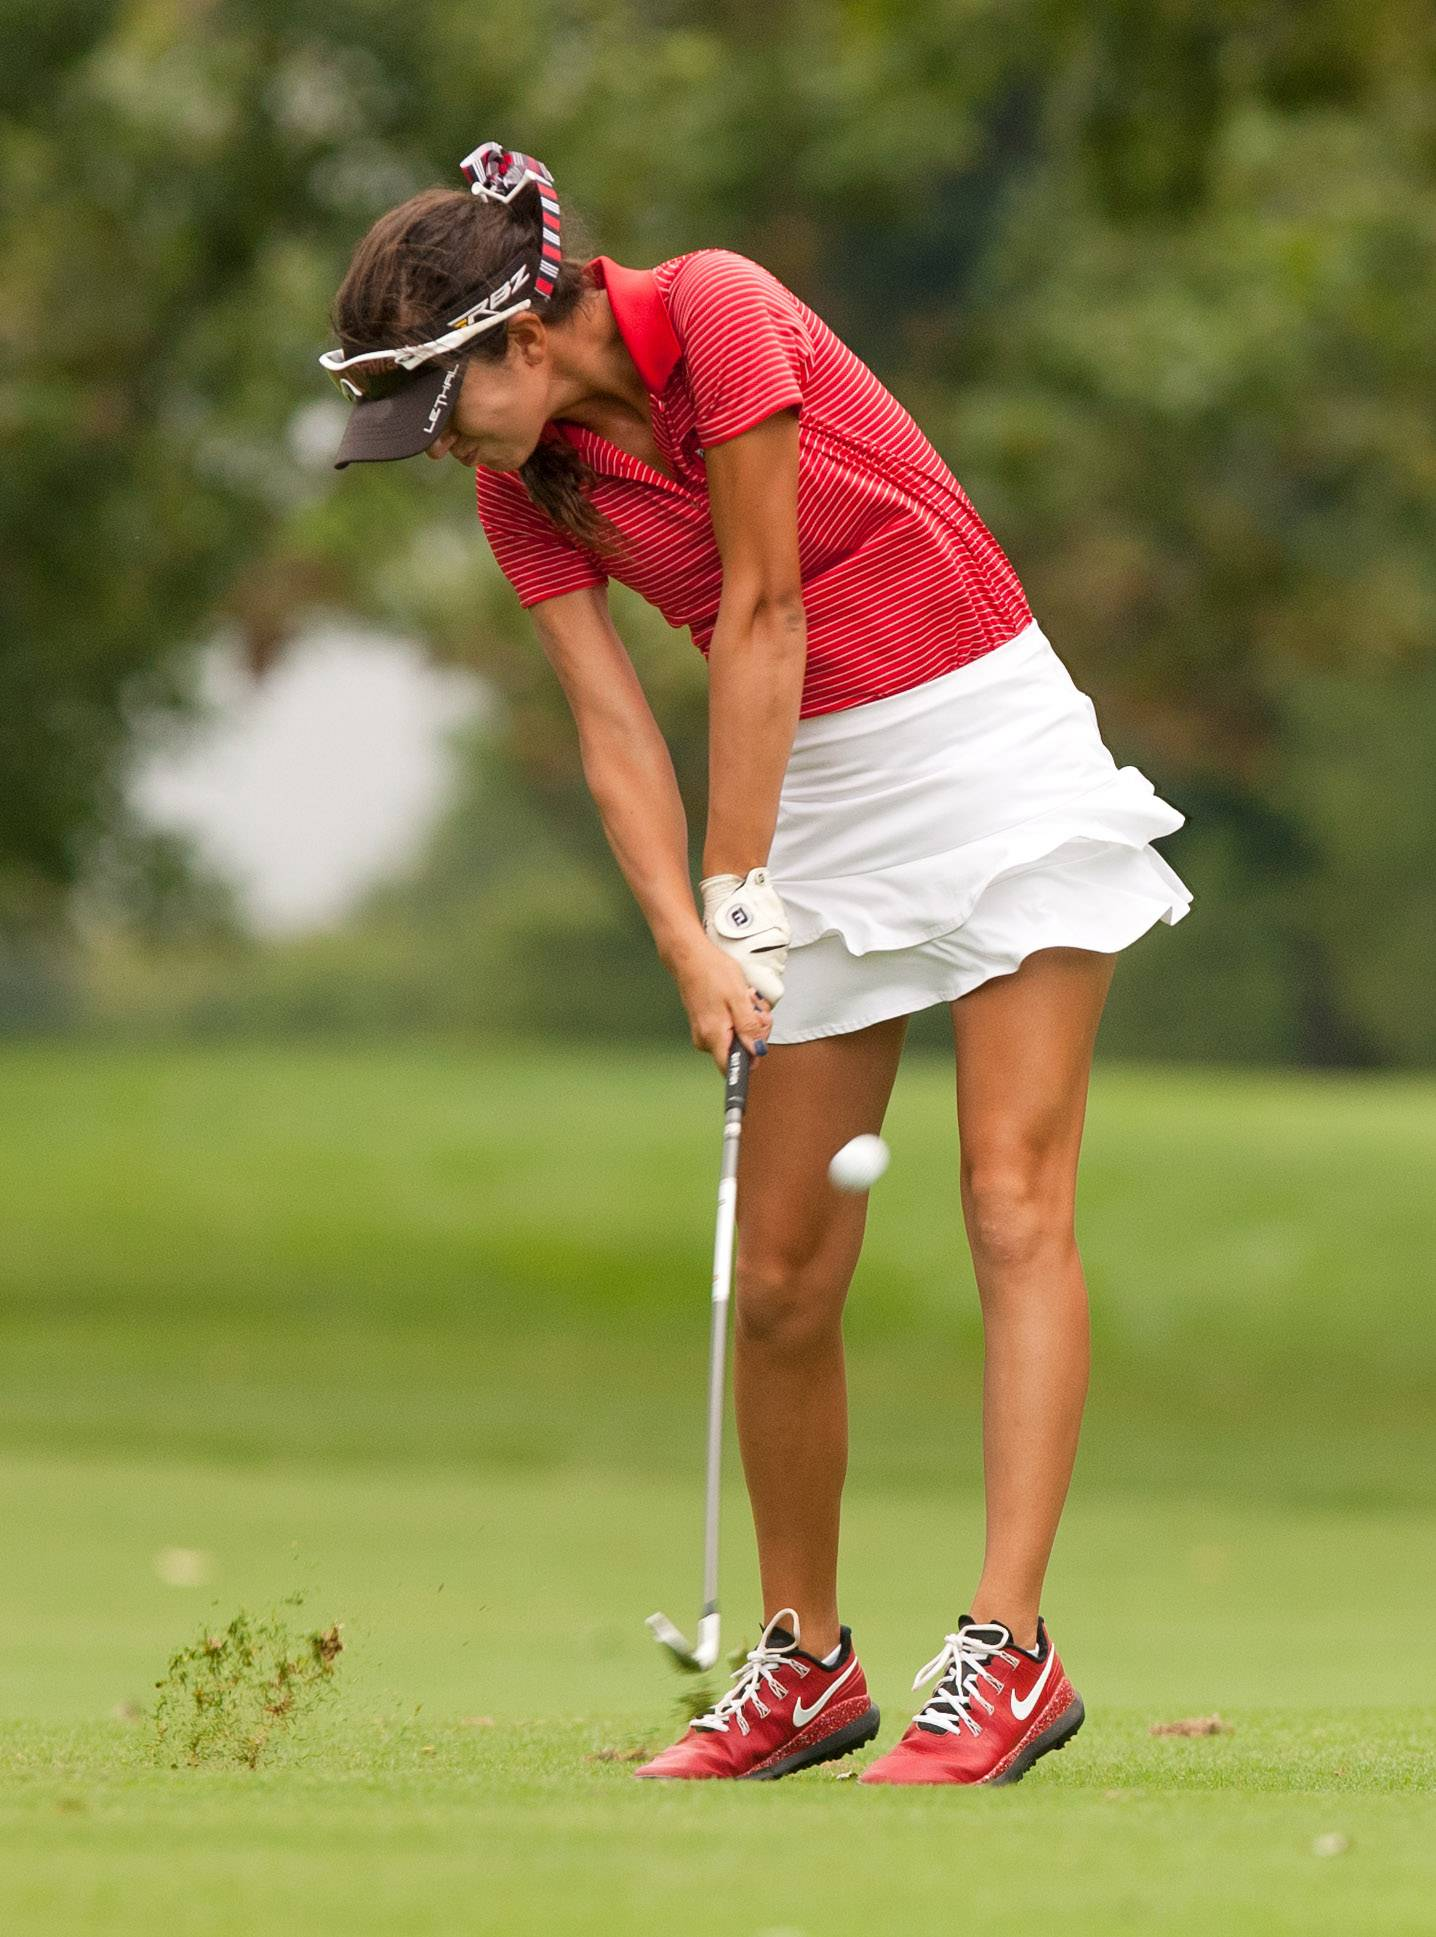 Benet's Isabella Abdullah approaches the green during the Vern McGonagle Memorial High School Golf Championship at the Naperville Country Club.